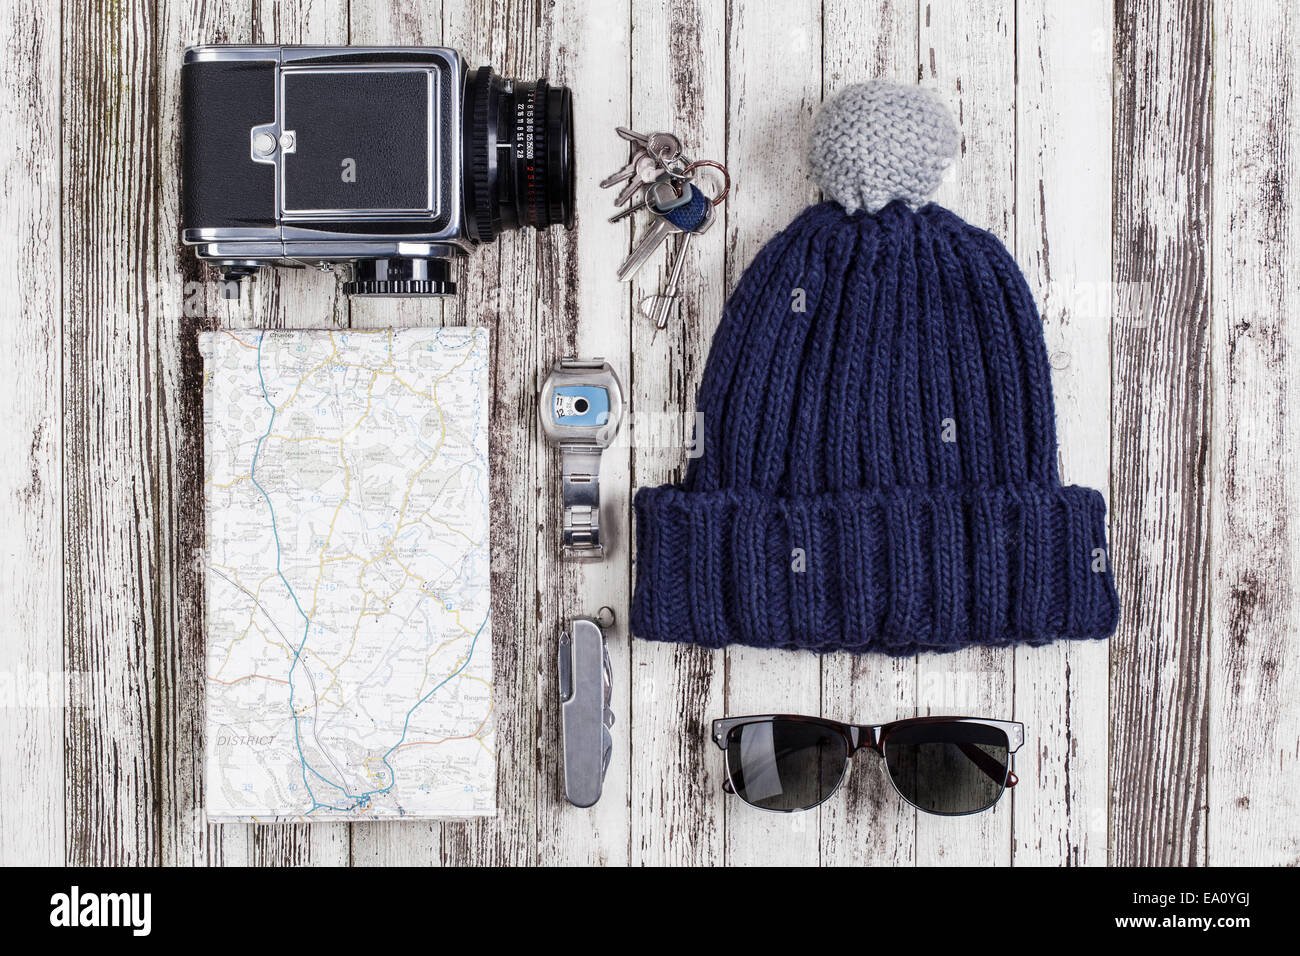 Still life of map with medium format camera and pocket knife - Stock Image